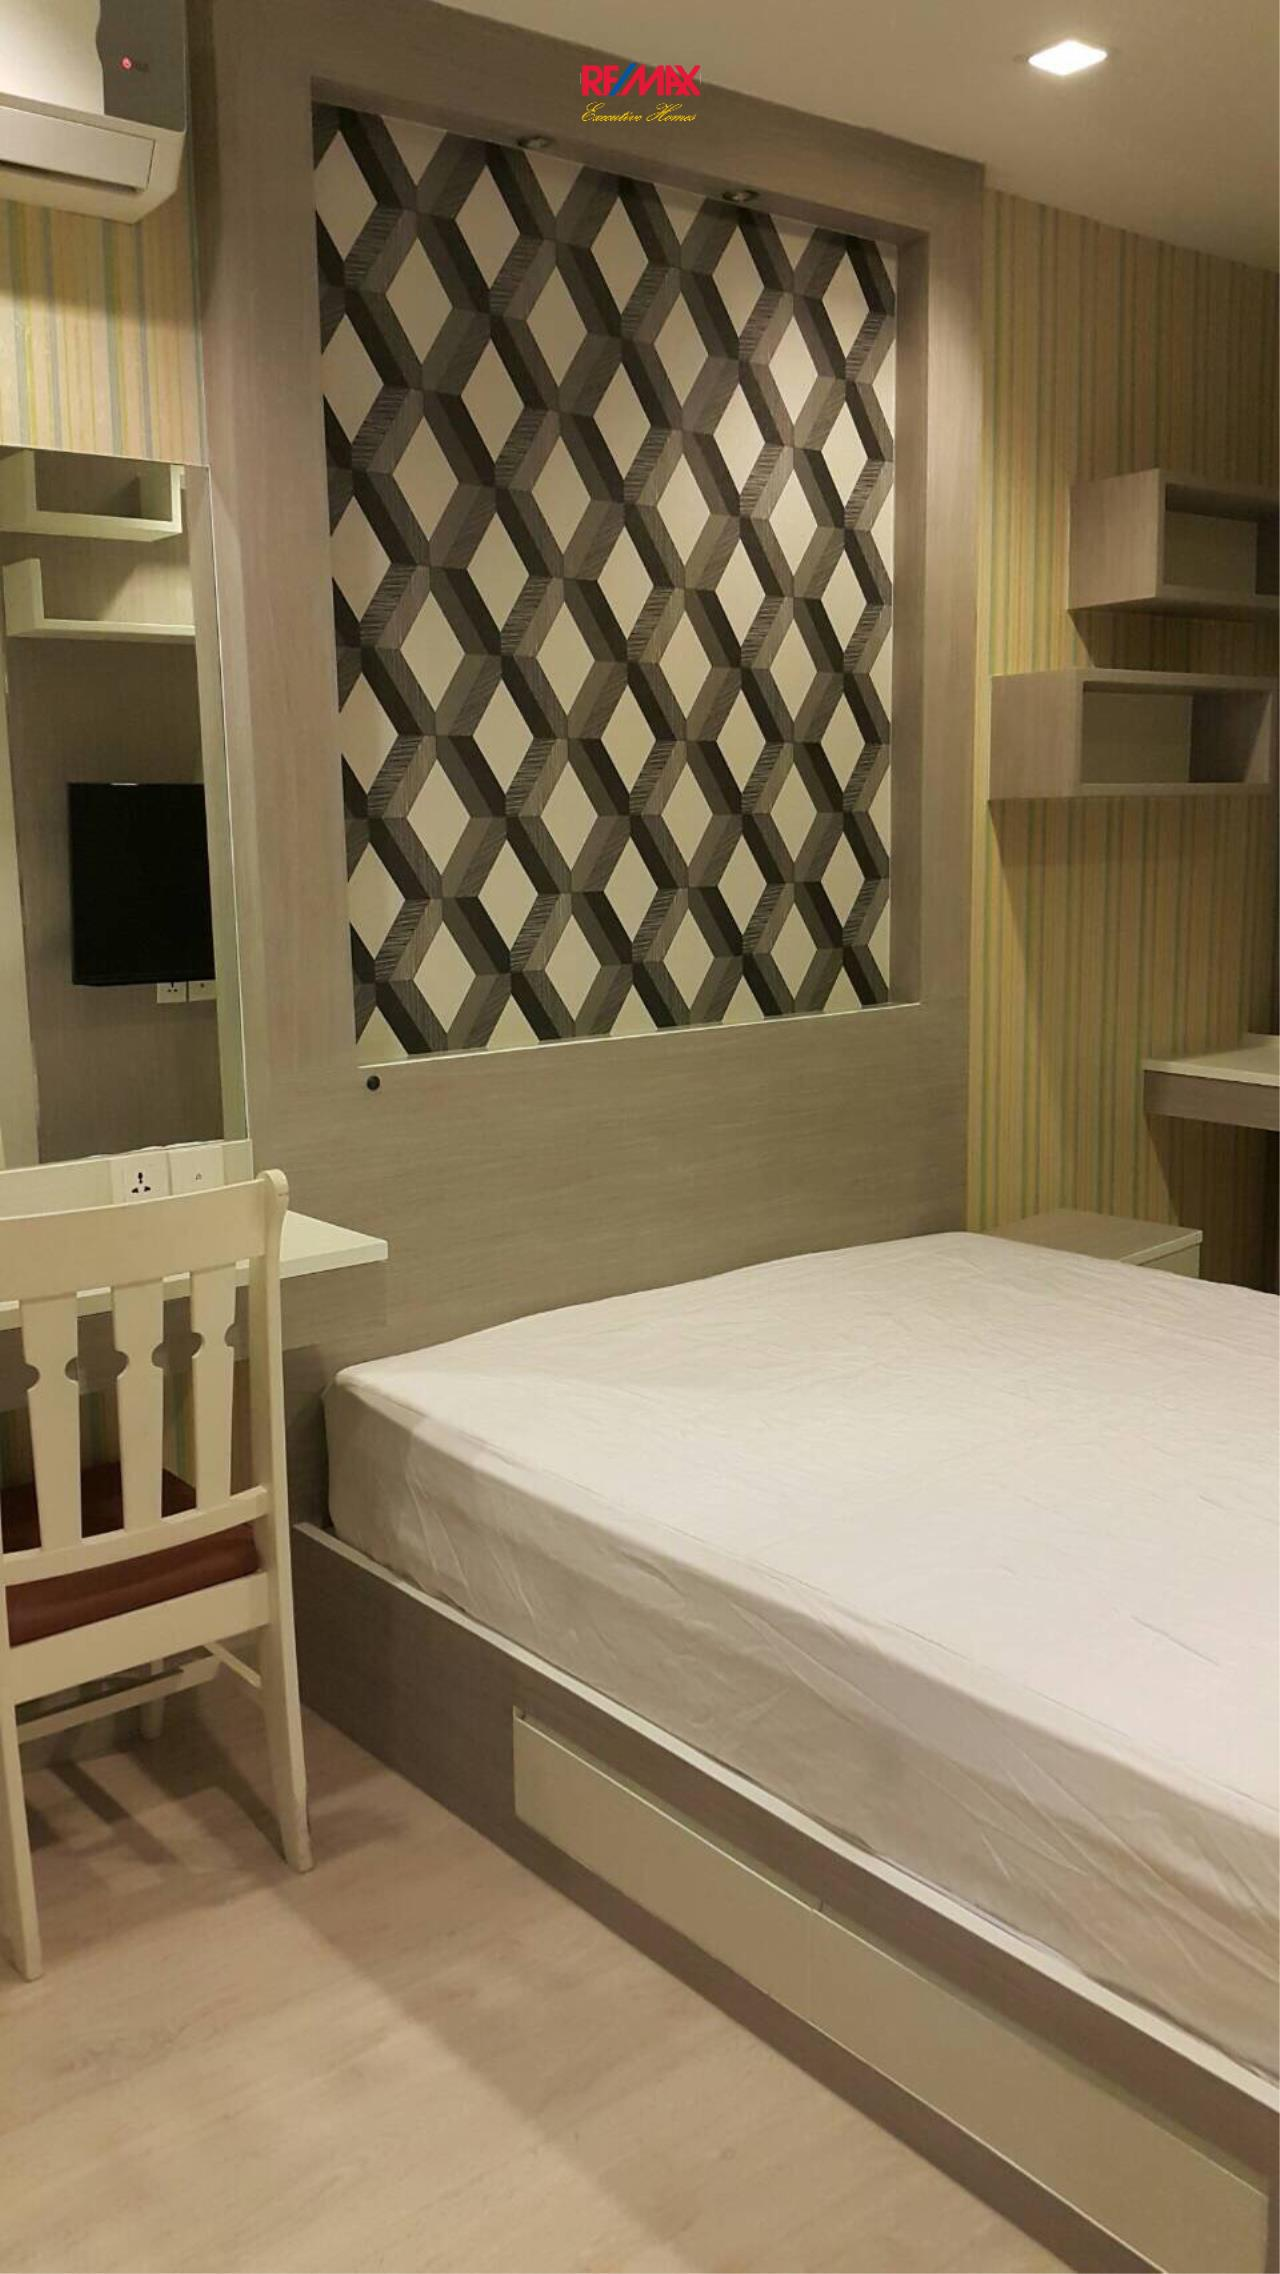 RE/MAX Executive Homes Agency's Nice 1 Bedroom for Rent Ideo Mobi Sathorn 2